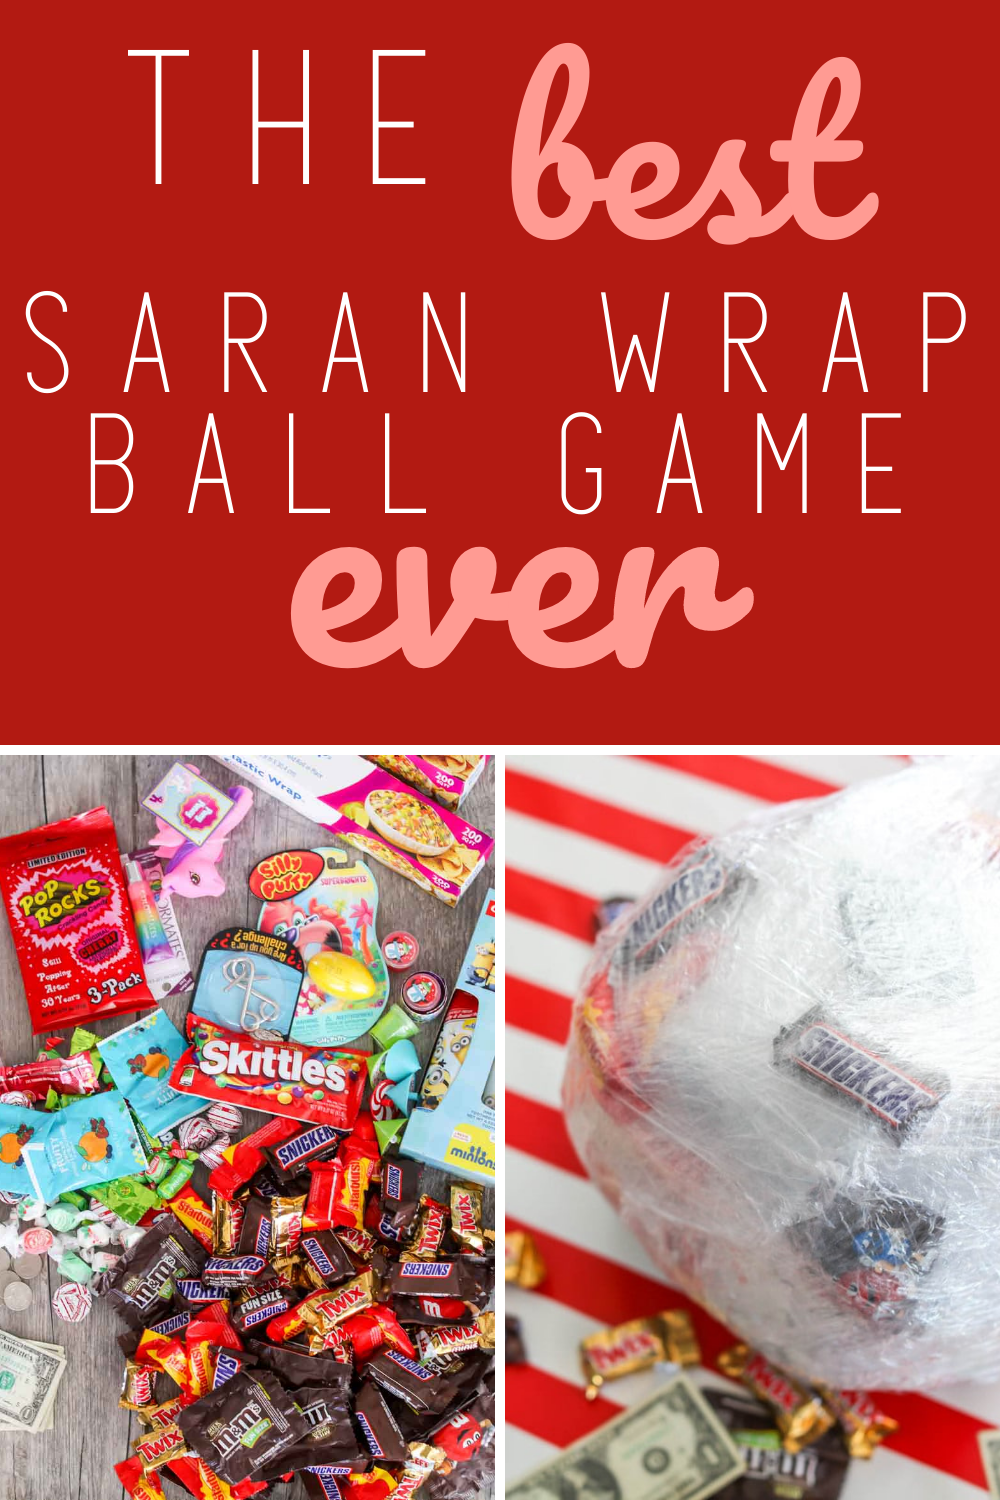 How To Play Saran Wrap Ball Game